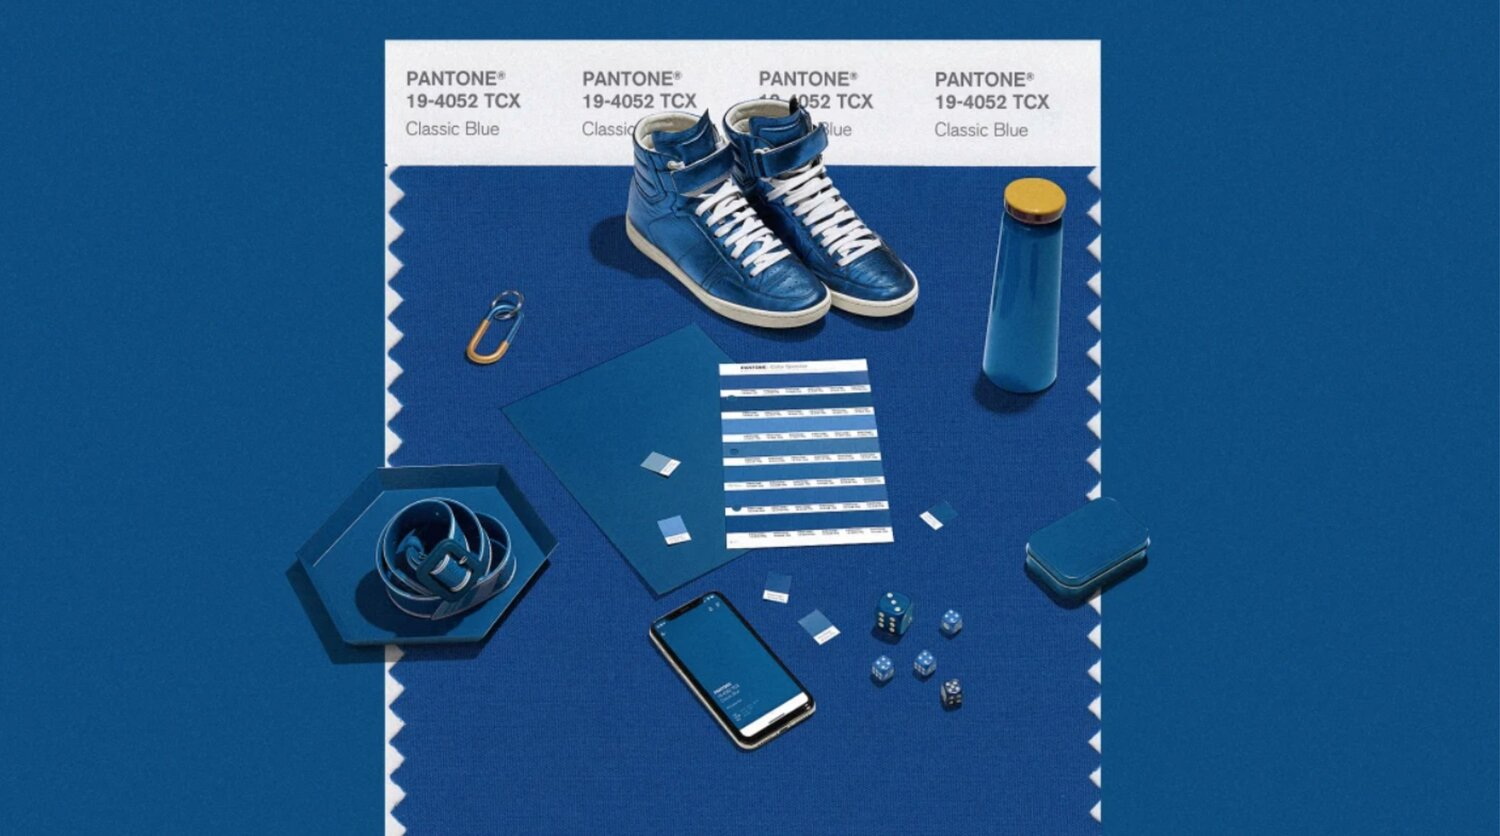 Announcing The Pantone Color Of The Year 2020 Tangram,New York Times Travel Editor Contact